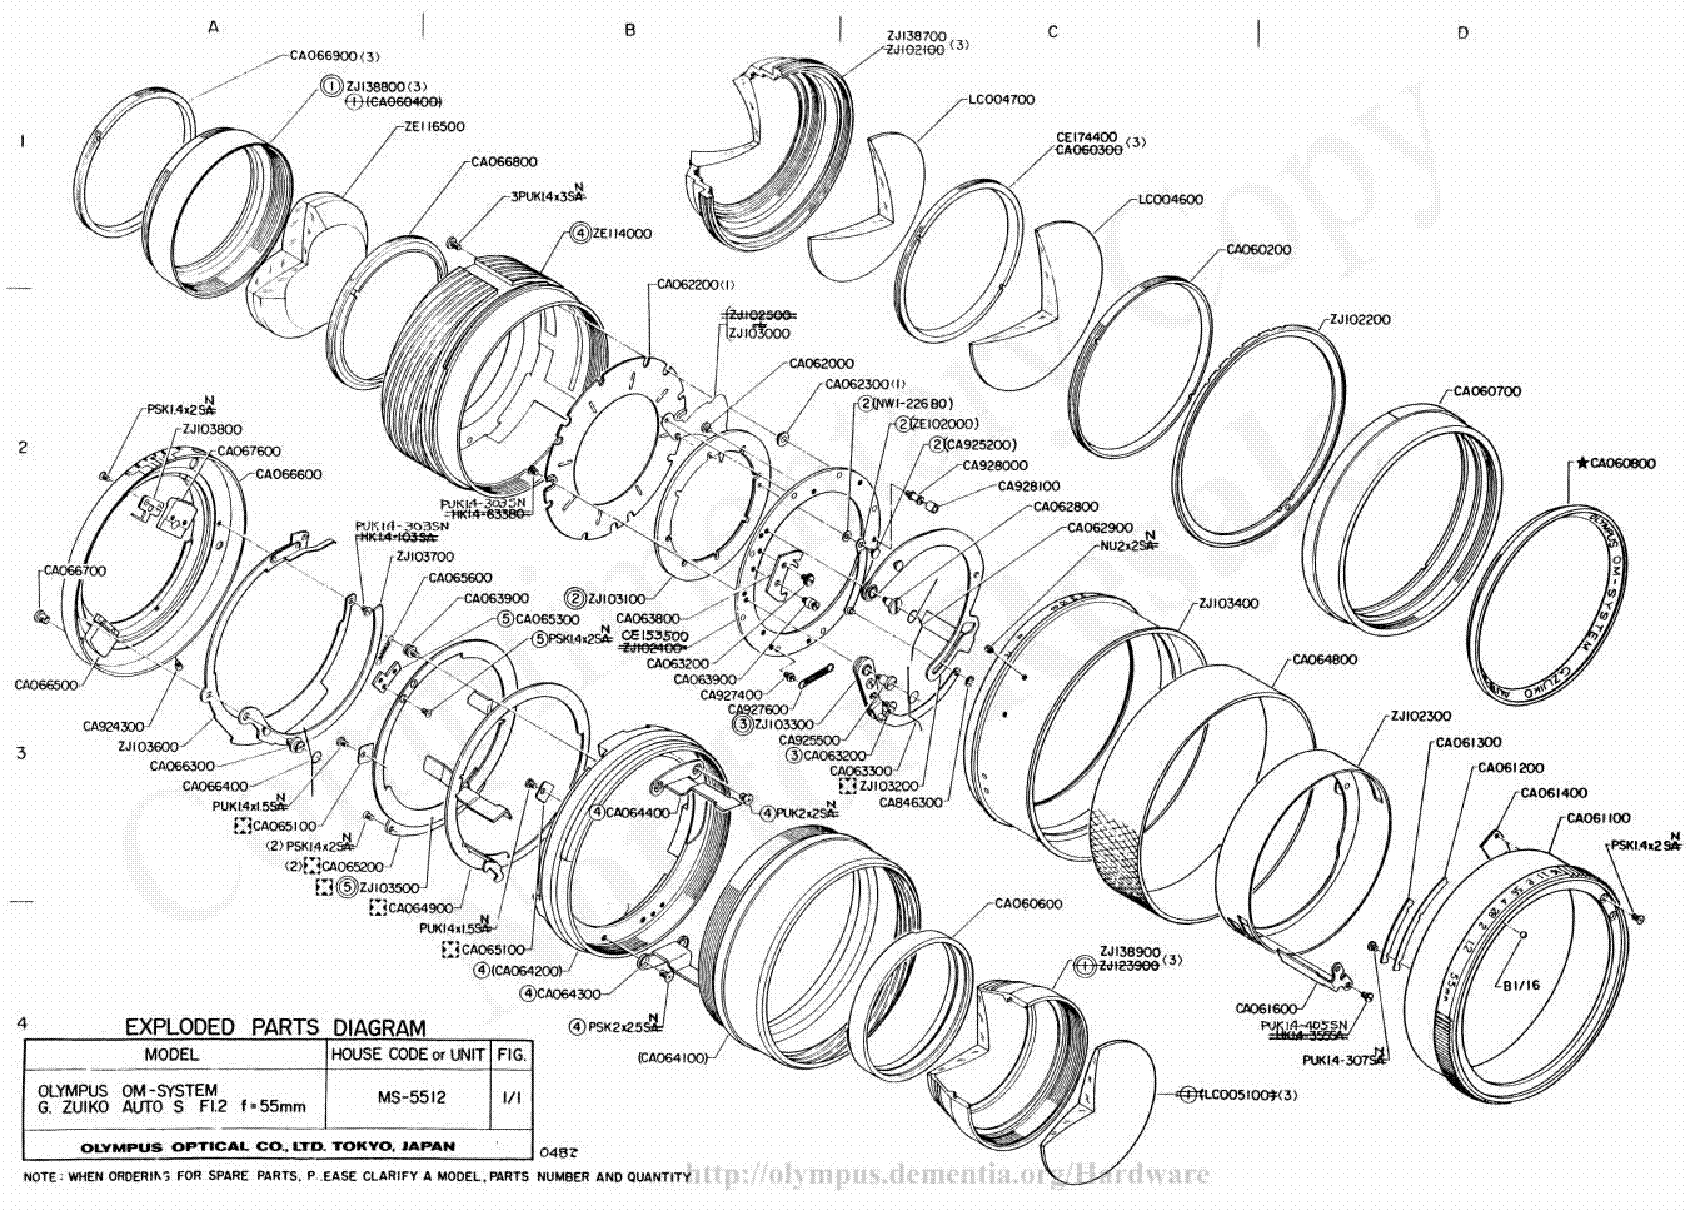 Olympus 55mm F1 2 Exploded Parts Diagram Service Manual